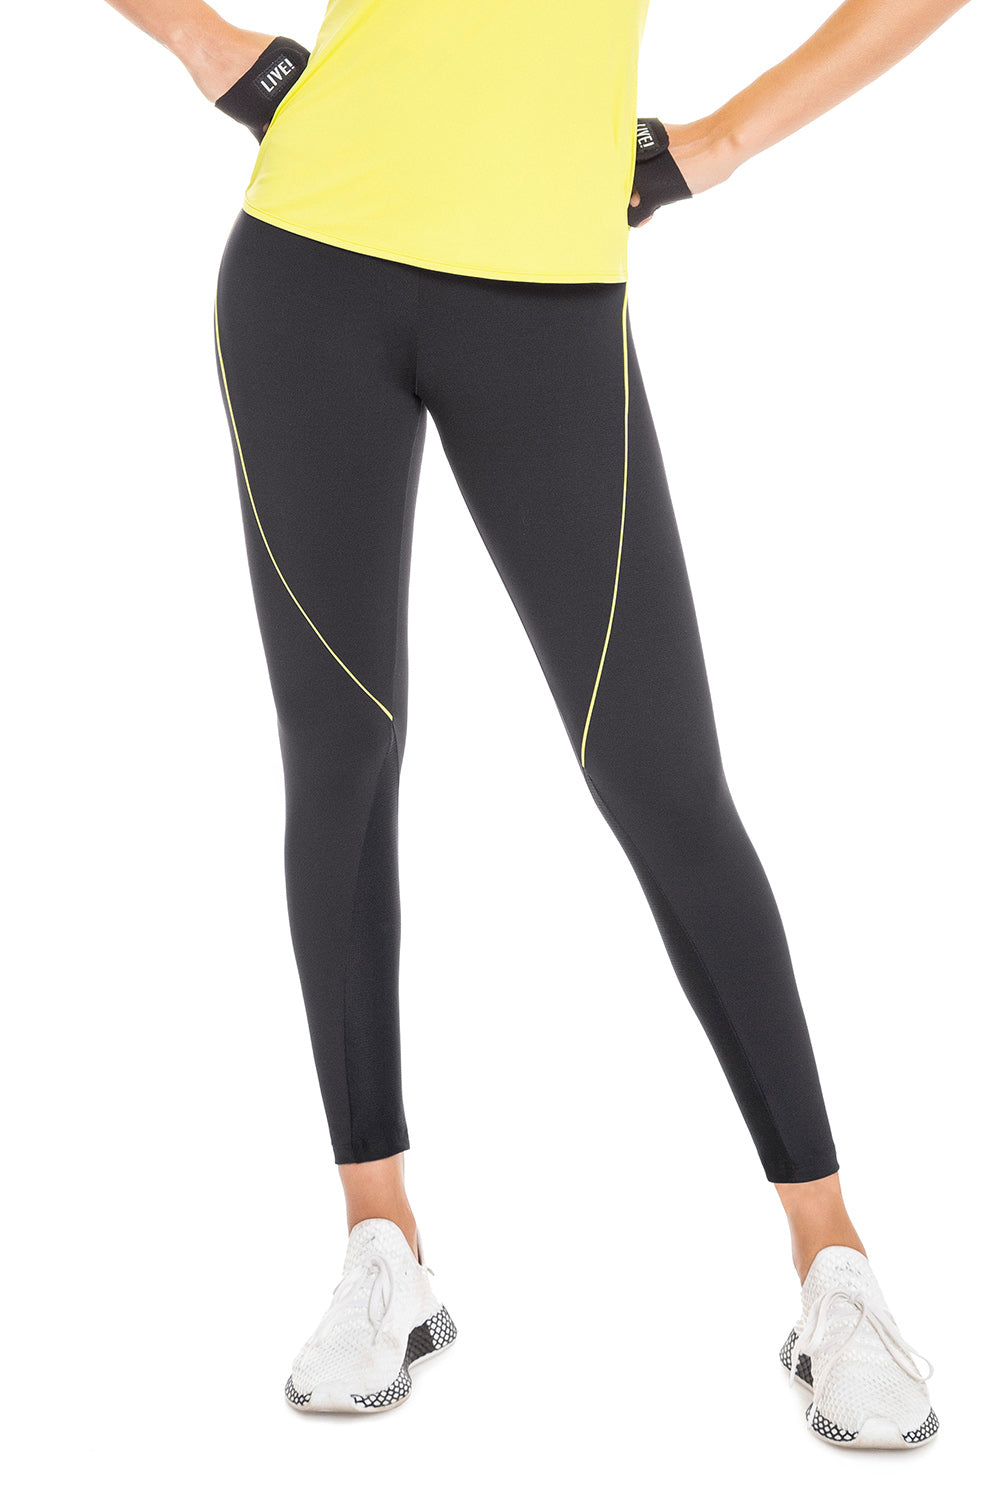 Unstoppable You Legging